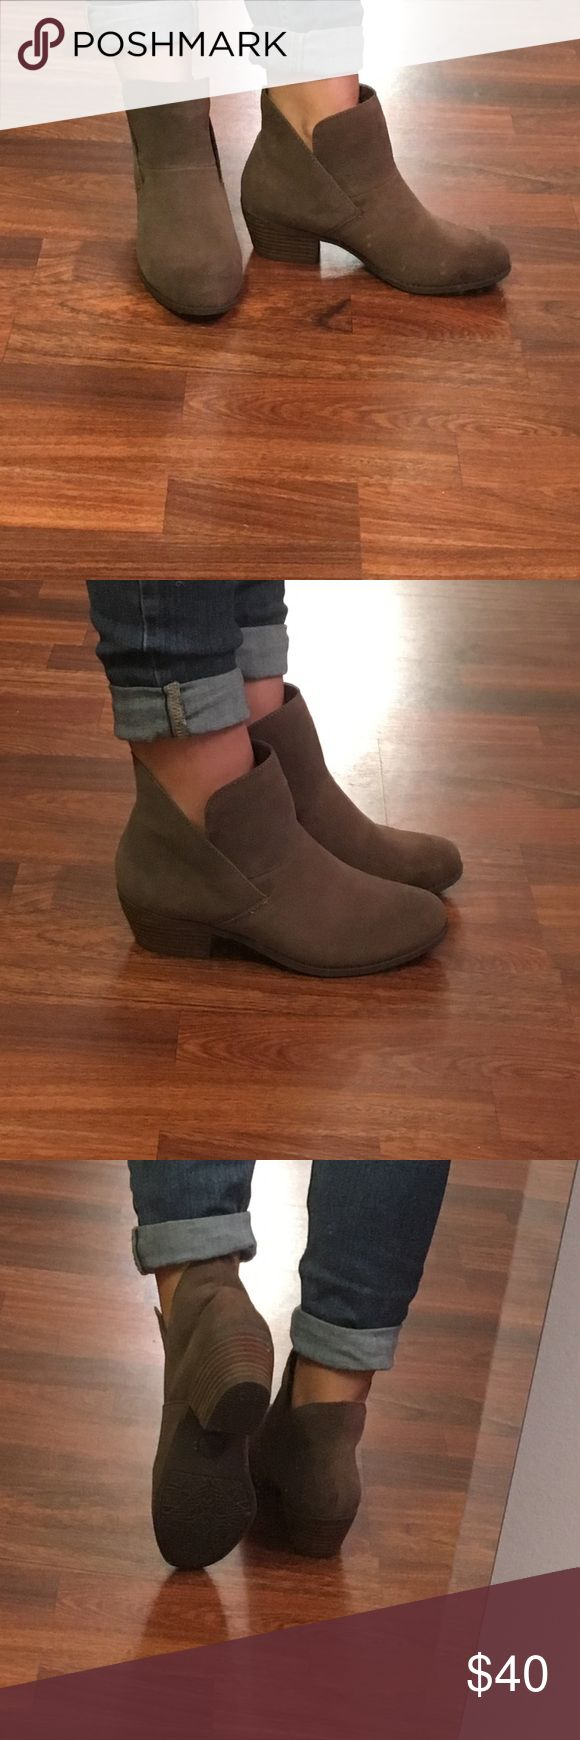 Suede flat bootie women's size 6 Mee Too brown suede flat bootie. Women's size 6. No signs of wear, like new! Shoes Ankle Boots & Booties